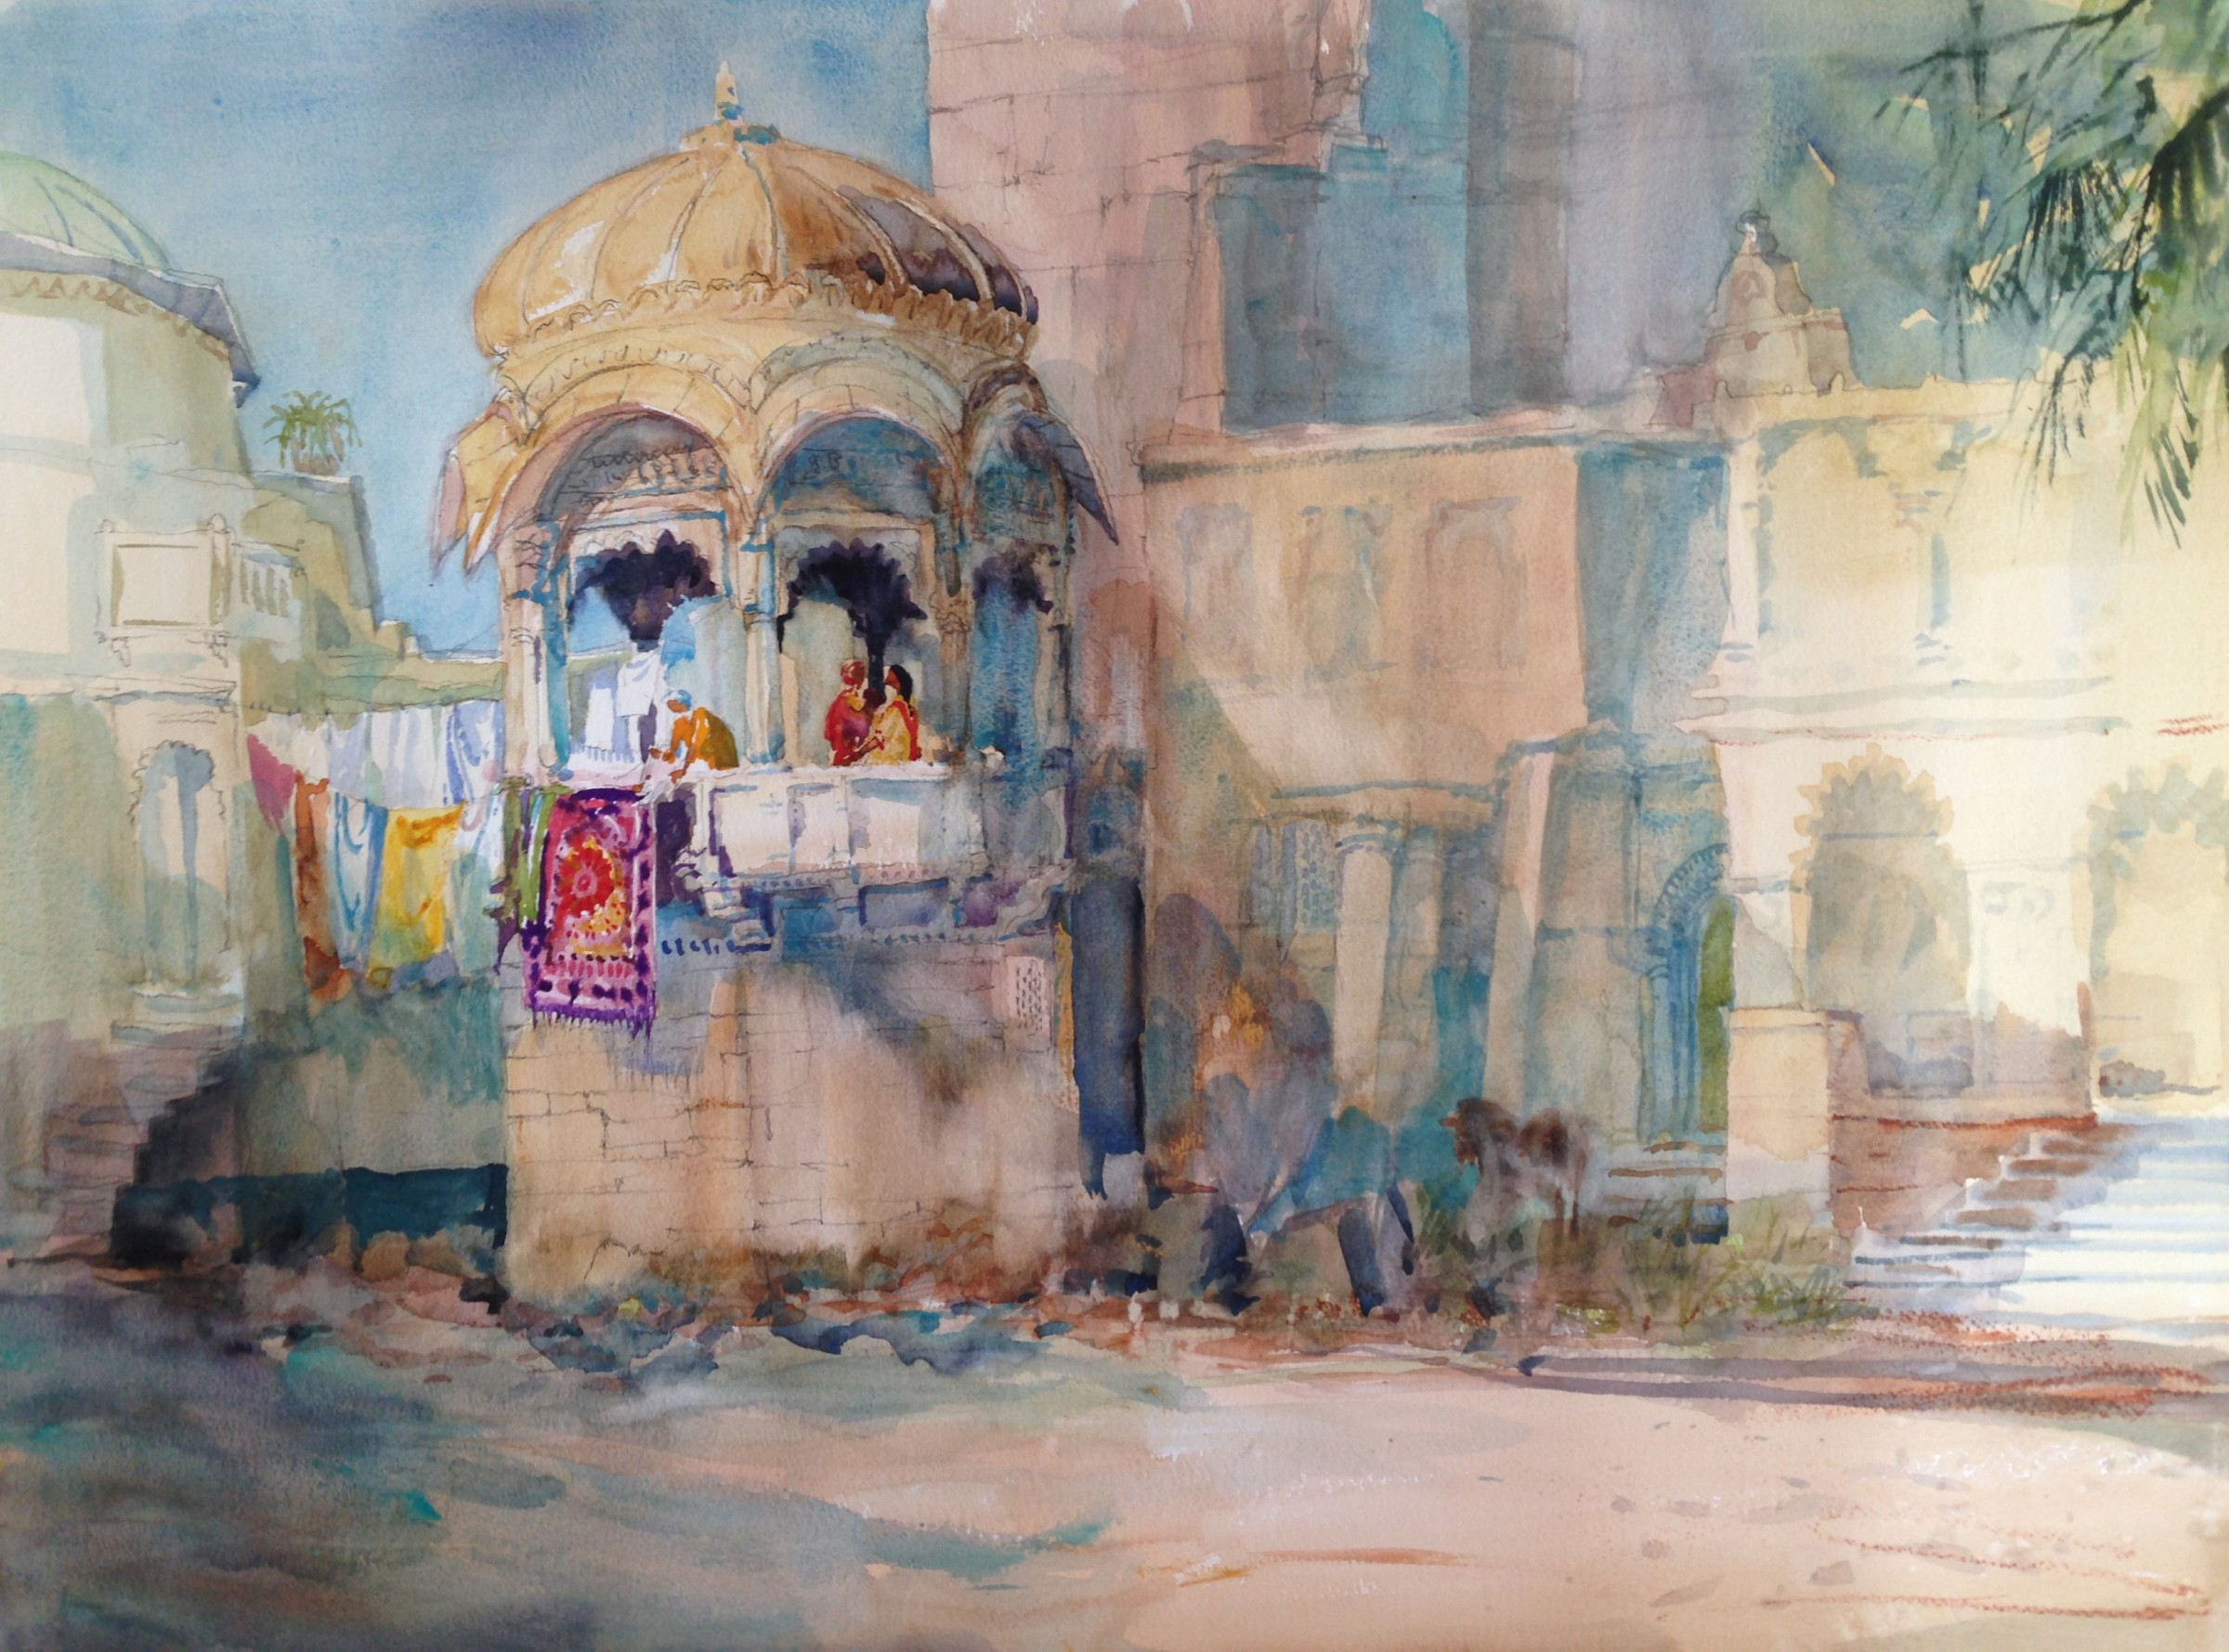 """<span class=""""link fancybox-details-link""""><a href=""""/artists/48-michael-chaplin/works/11533-michael-chaplin-washday-jaipur-india/"""">View Detail Page</a></span><div class=""""artist""""><span class=""""artist""""><strong>Michael Chaplin</strong></span></div><div class=""""title""""><em>Washday - Jaipur, India</em></div><div class=""""medium"""">watercolour</div><div class=""""price"""">£2,750.00</div>"""